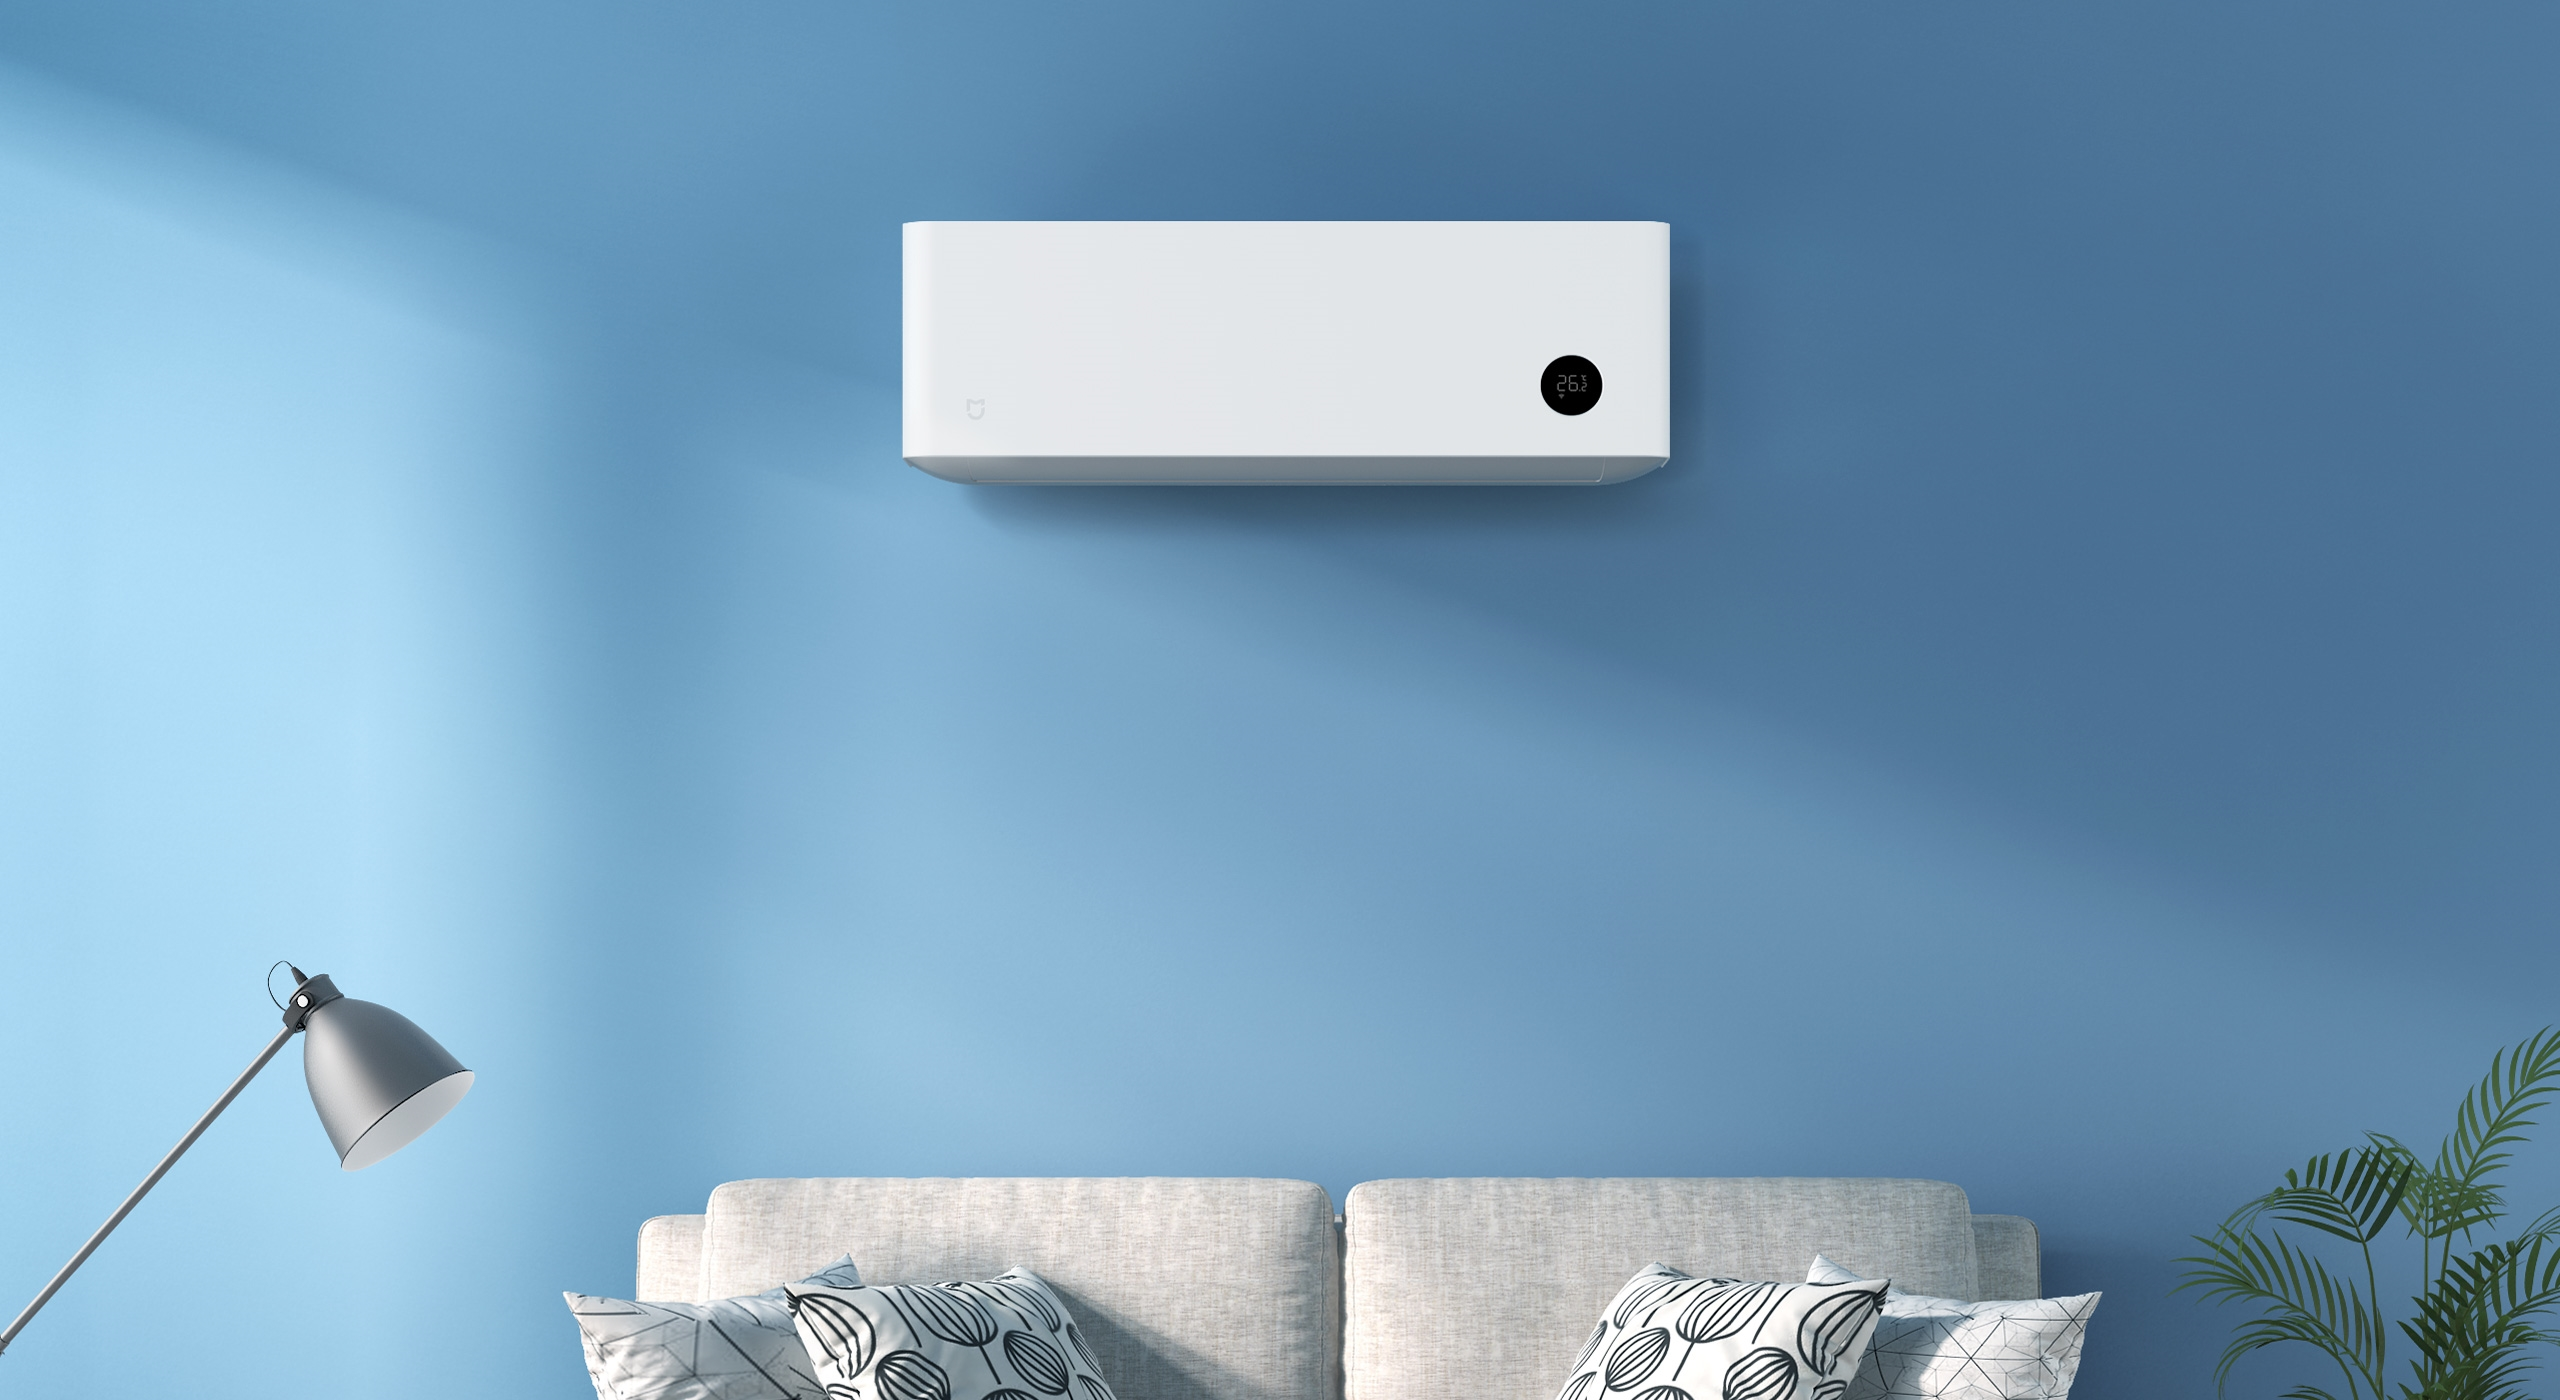 nuevo-mijia-smart-air-conditioner